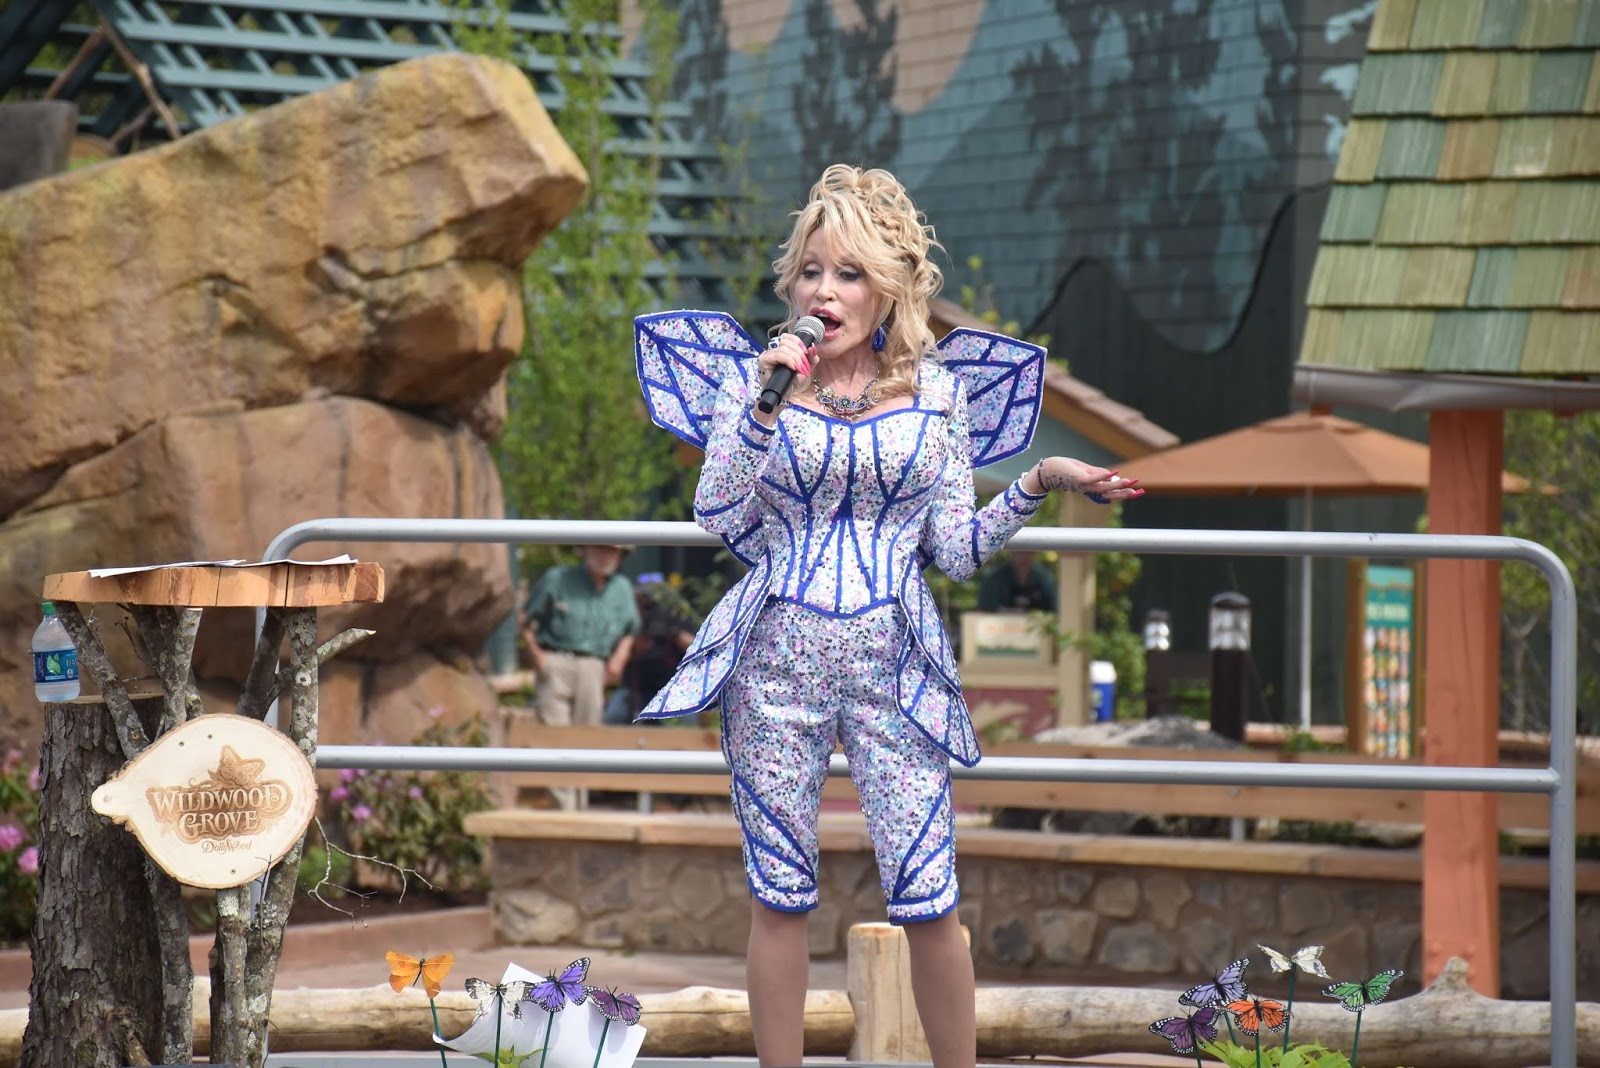 Dolly Parton at Wildwood Grove in Dollywood